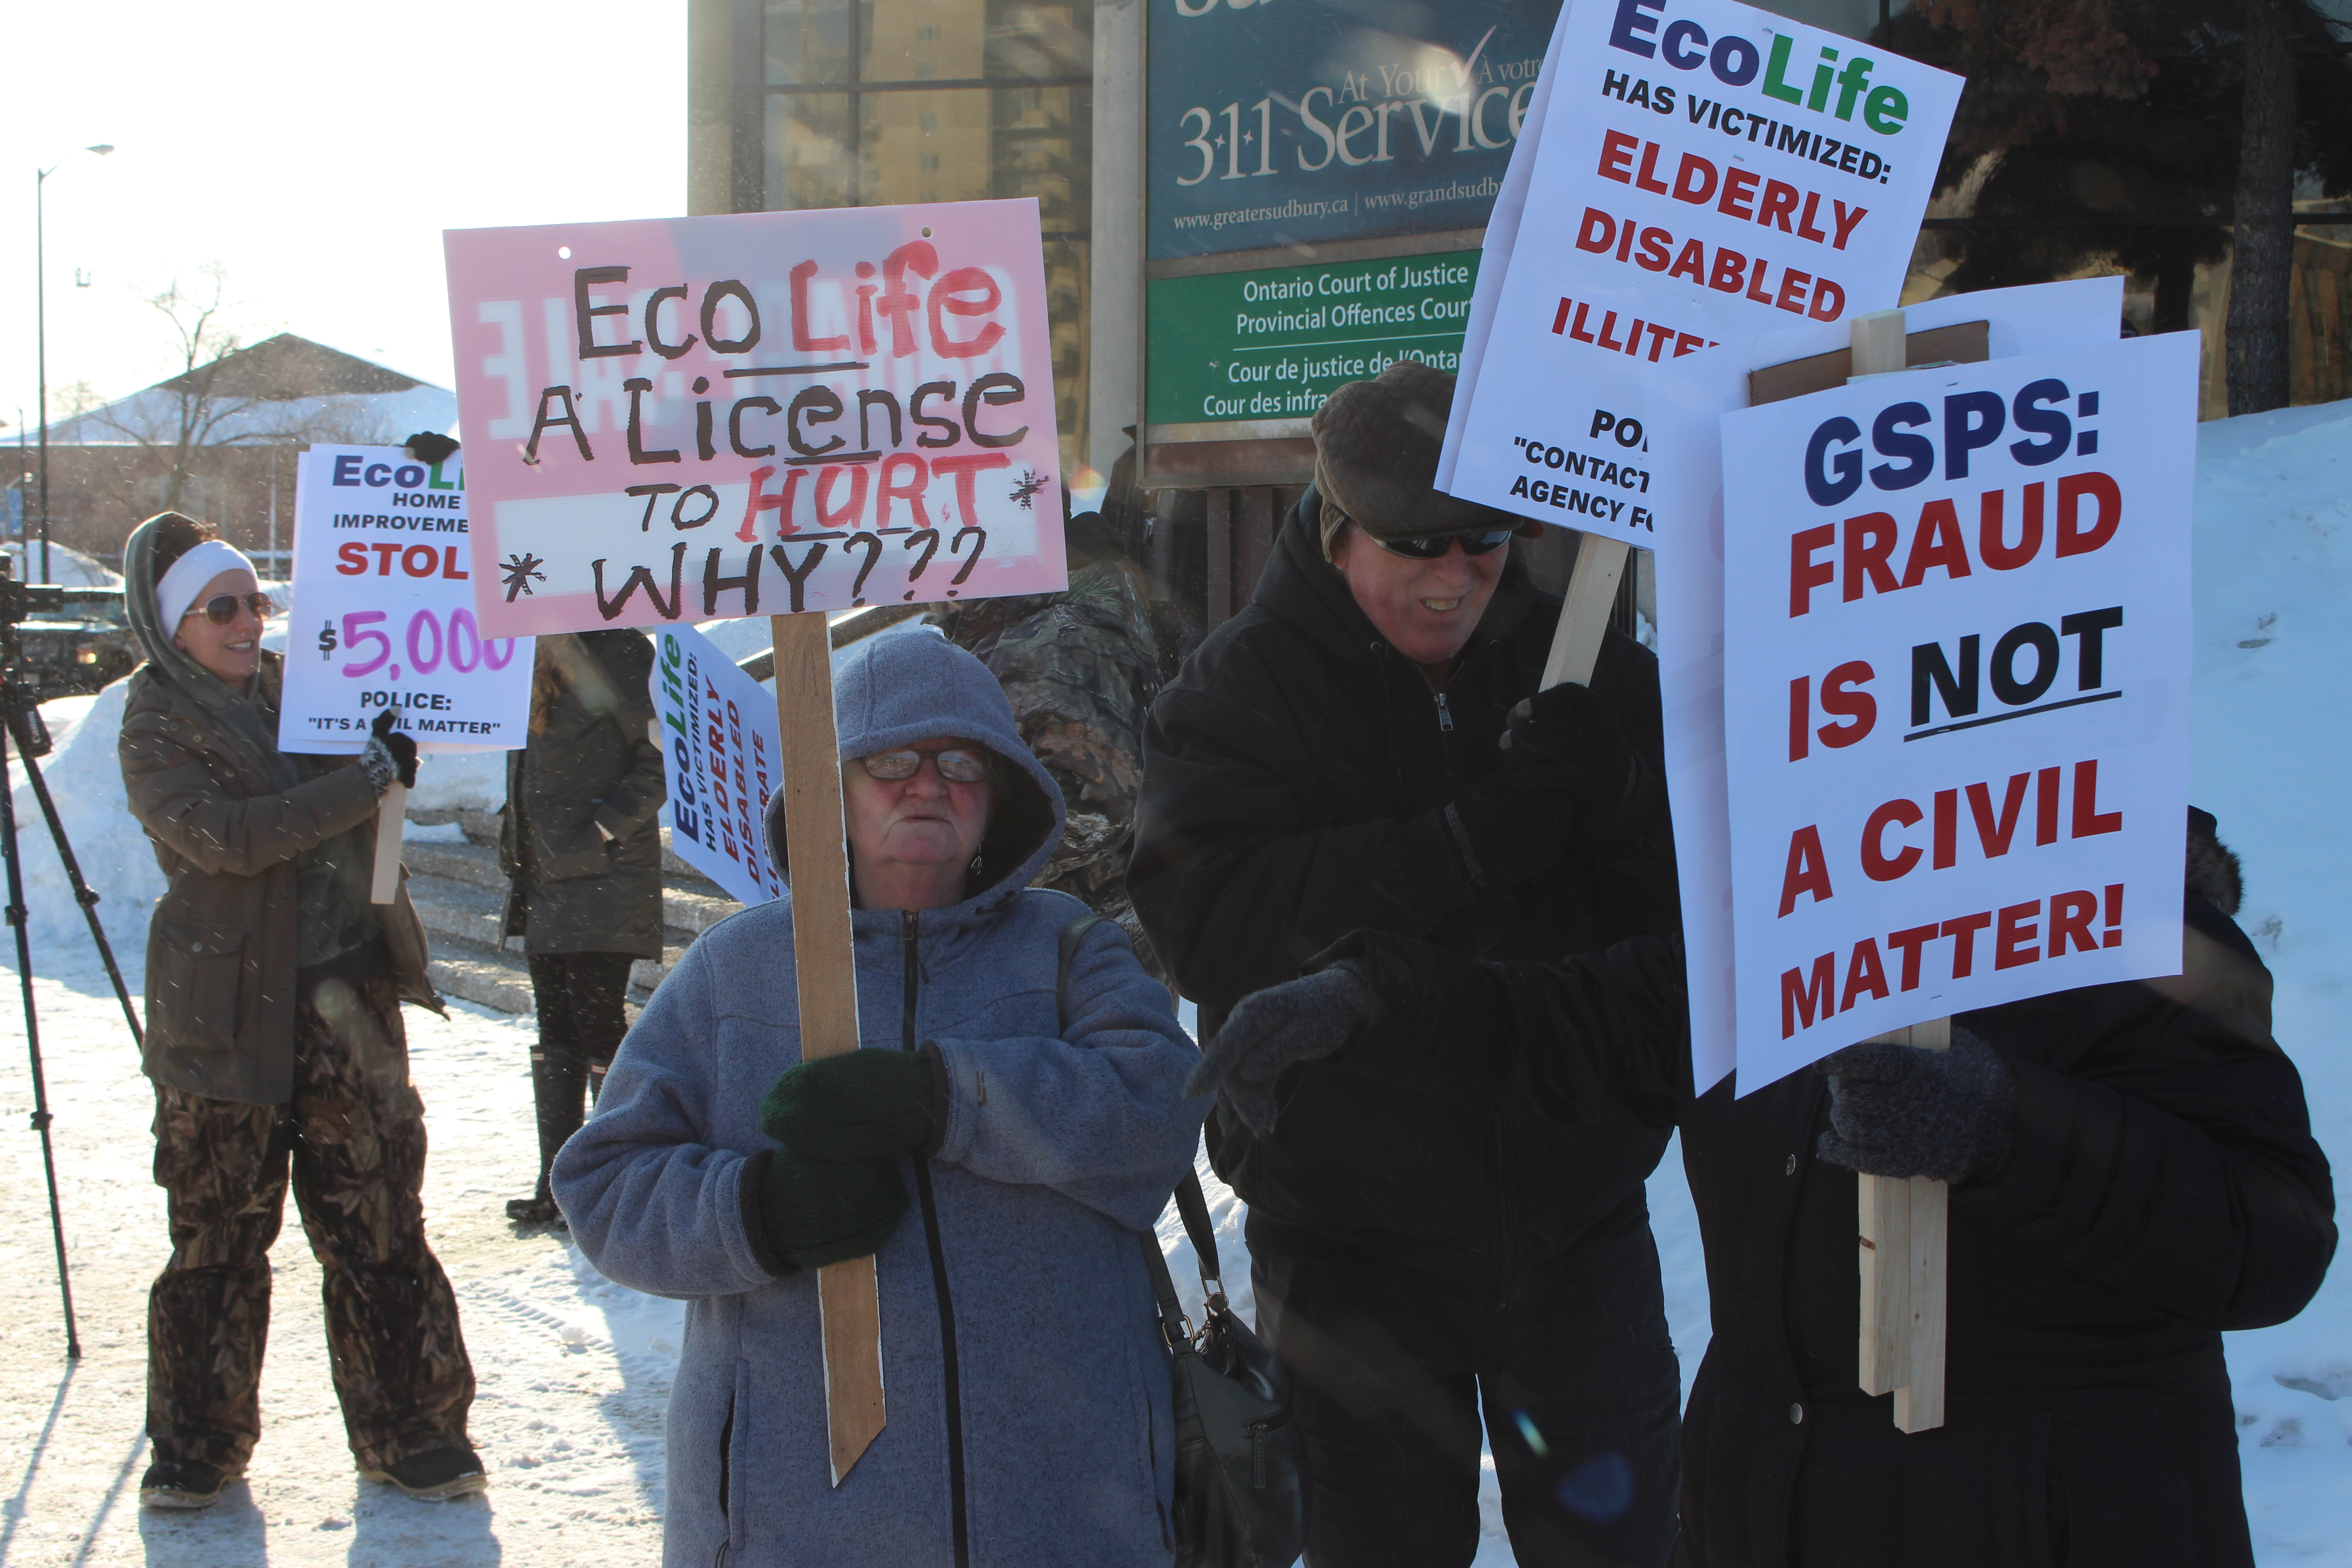 Protesters say something must be done about local home improvement company